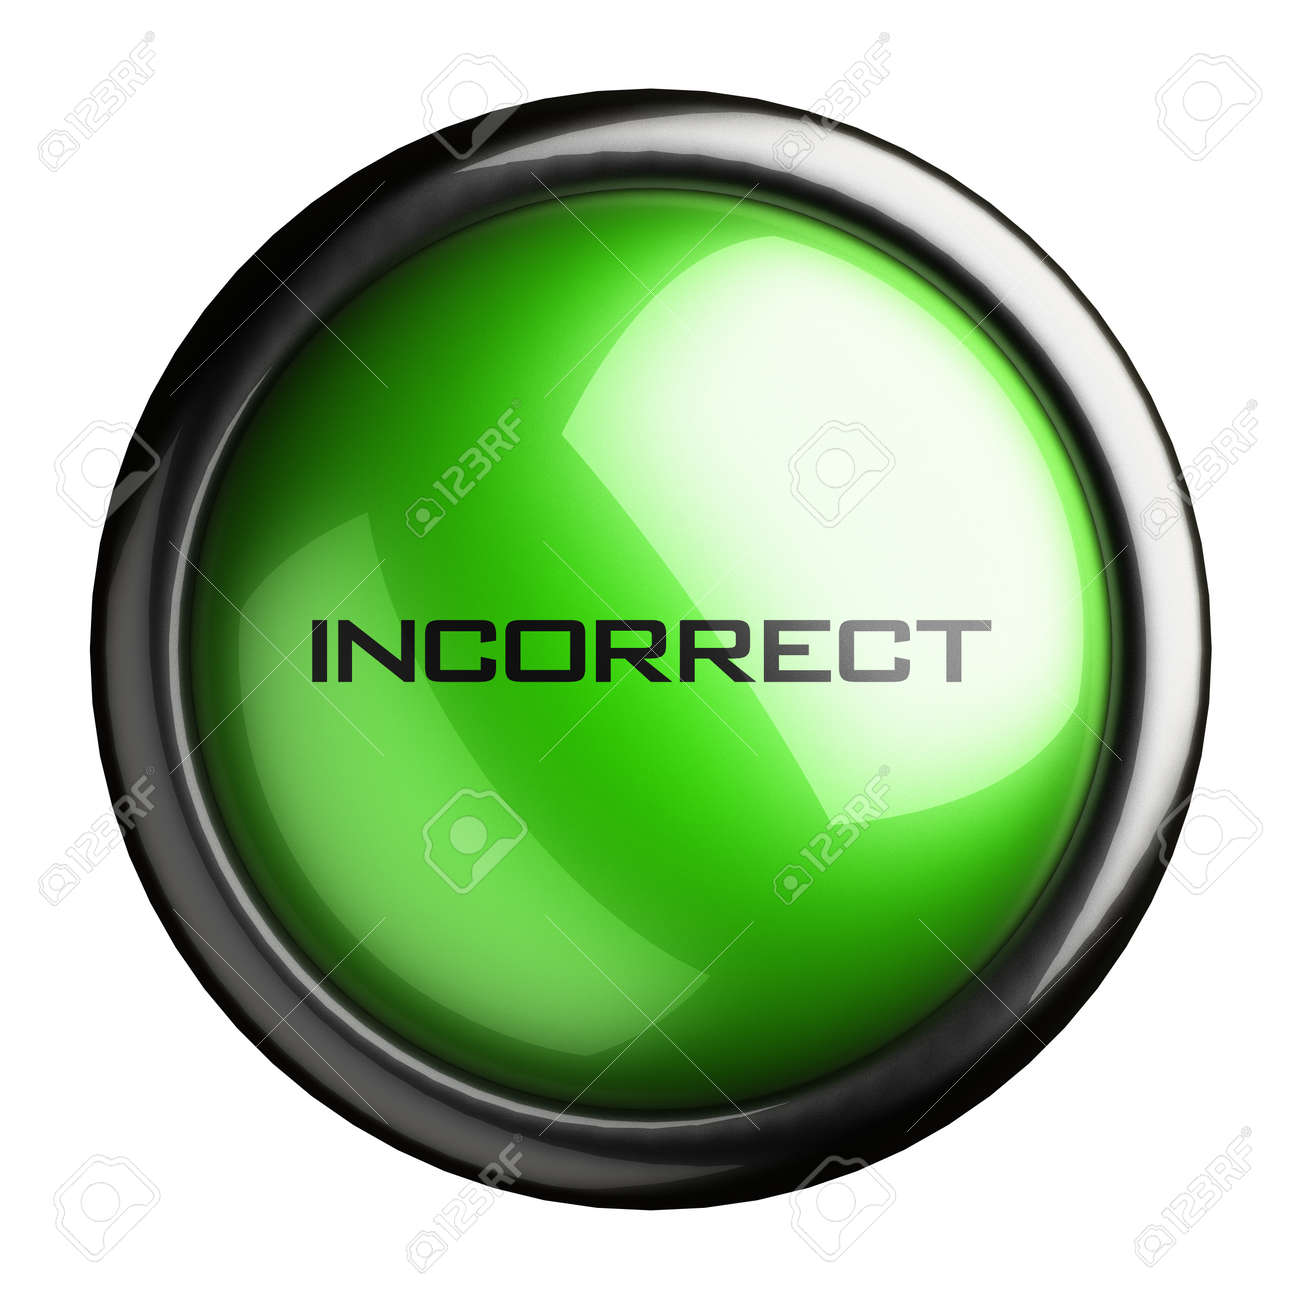 Word on the button Stock Photo - 16396700